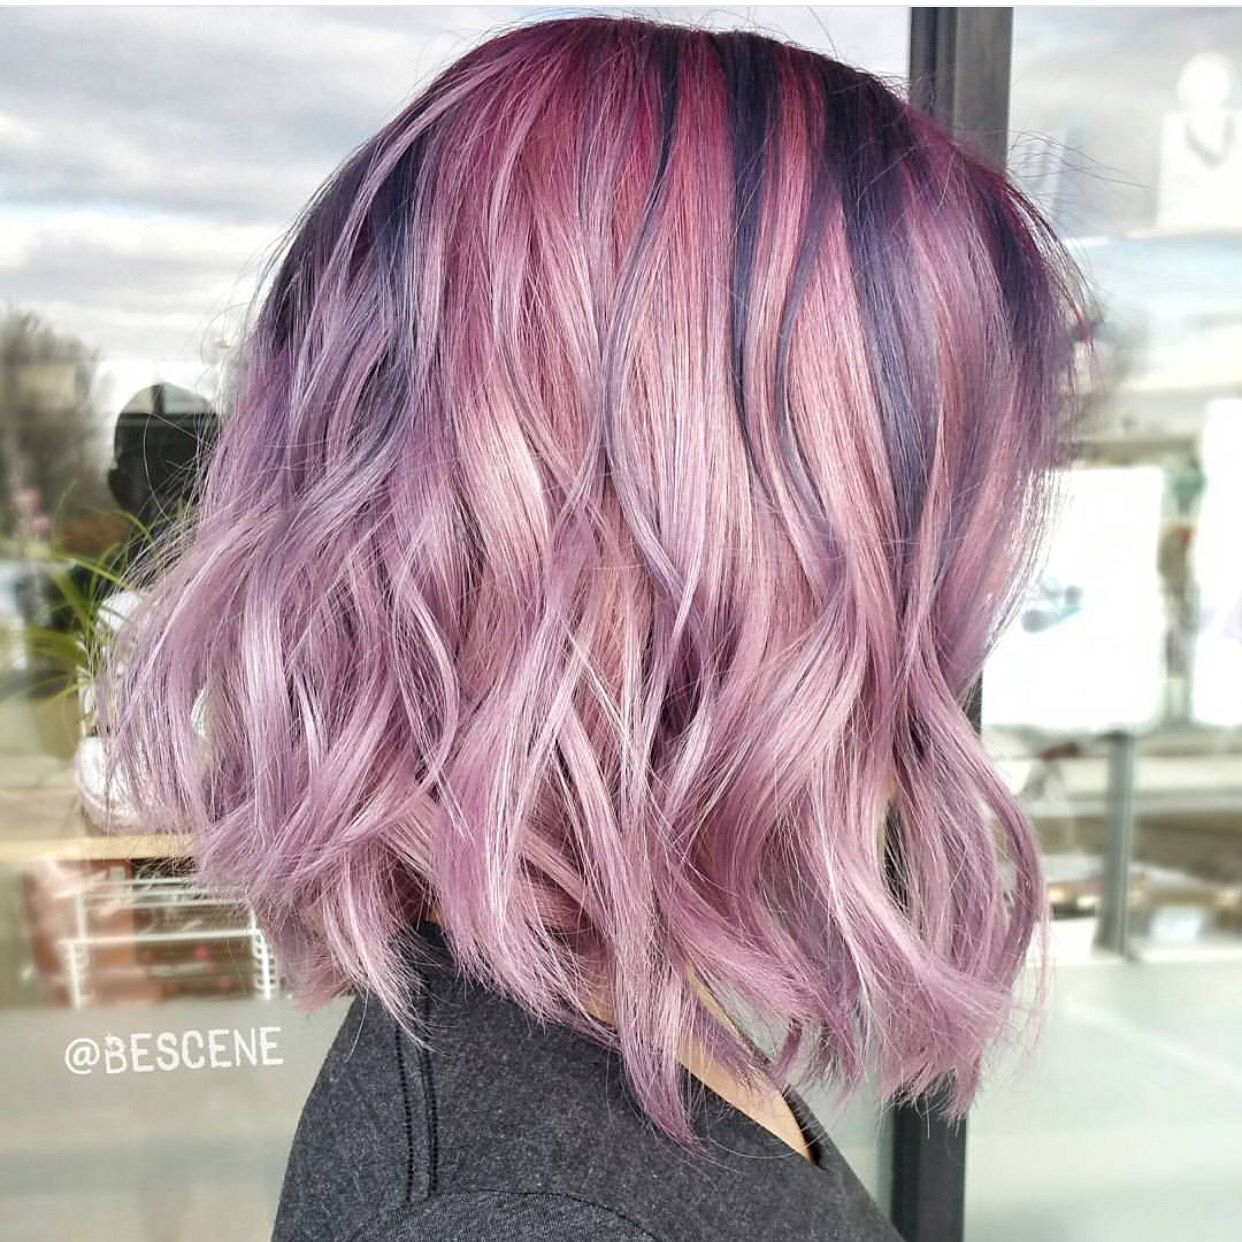 Pearlescent Pink Hair Colors With Deeper Metallic Undertones By Linh Phan Hotonbeauty